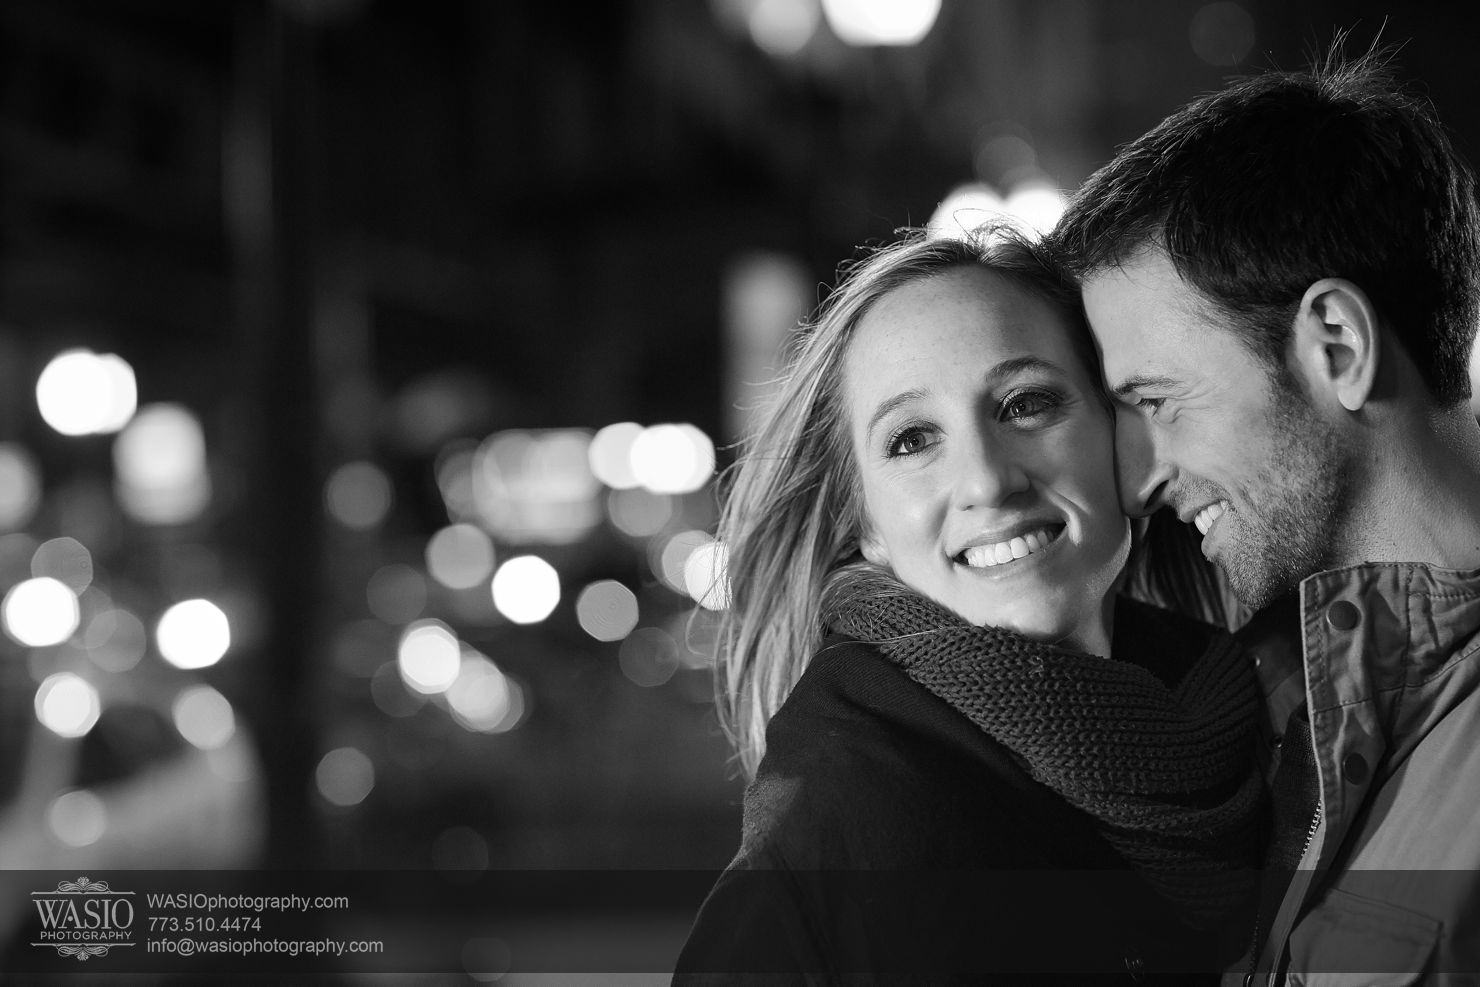 019_Chicago-Winter-Engagement_Courtney-Danny Chicago Winter Engagement - Courtney + Danny